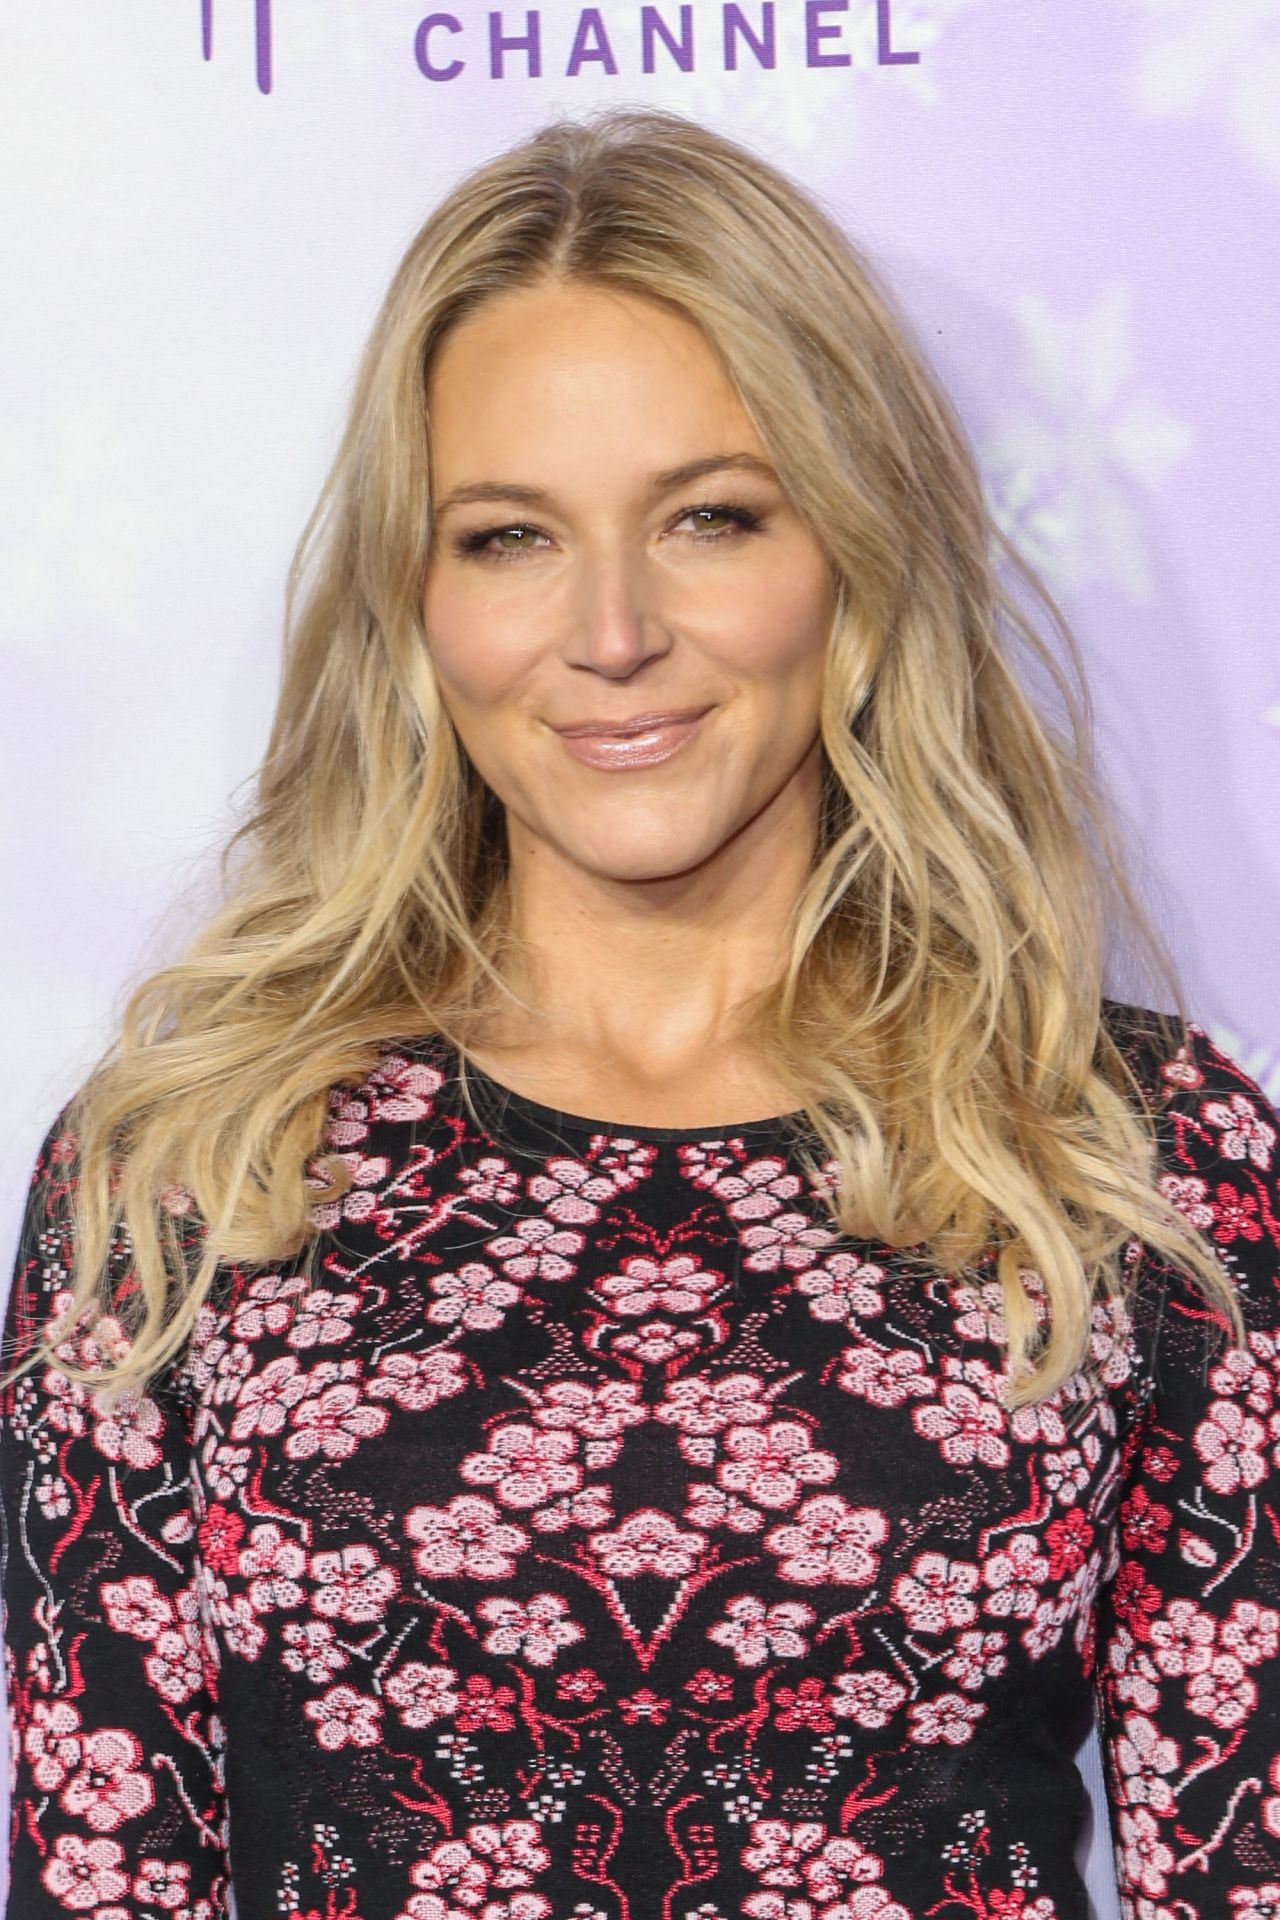 Jewel Kilcher Hallmark Channel And Hallmark Movies And